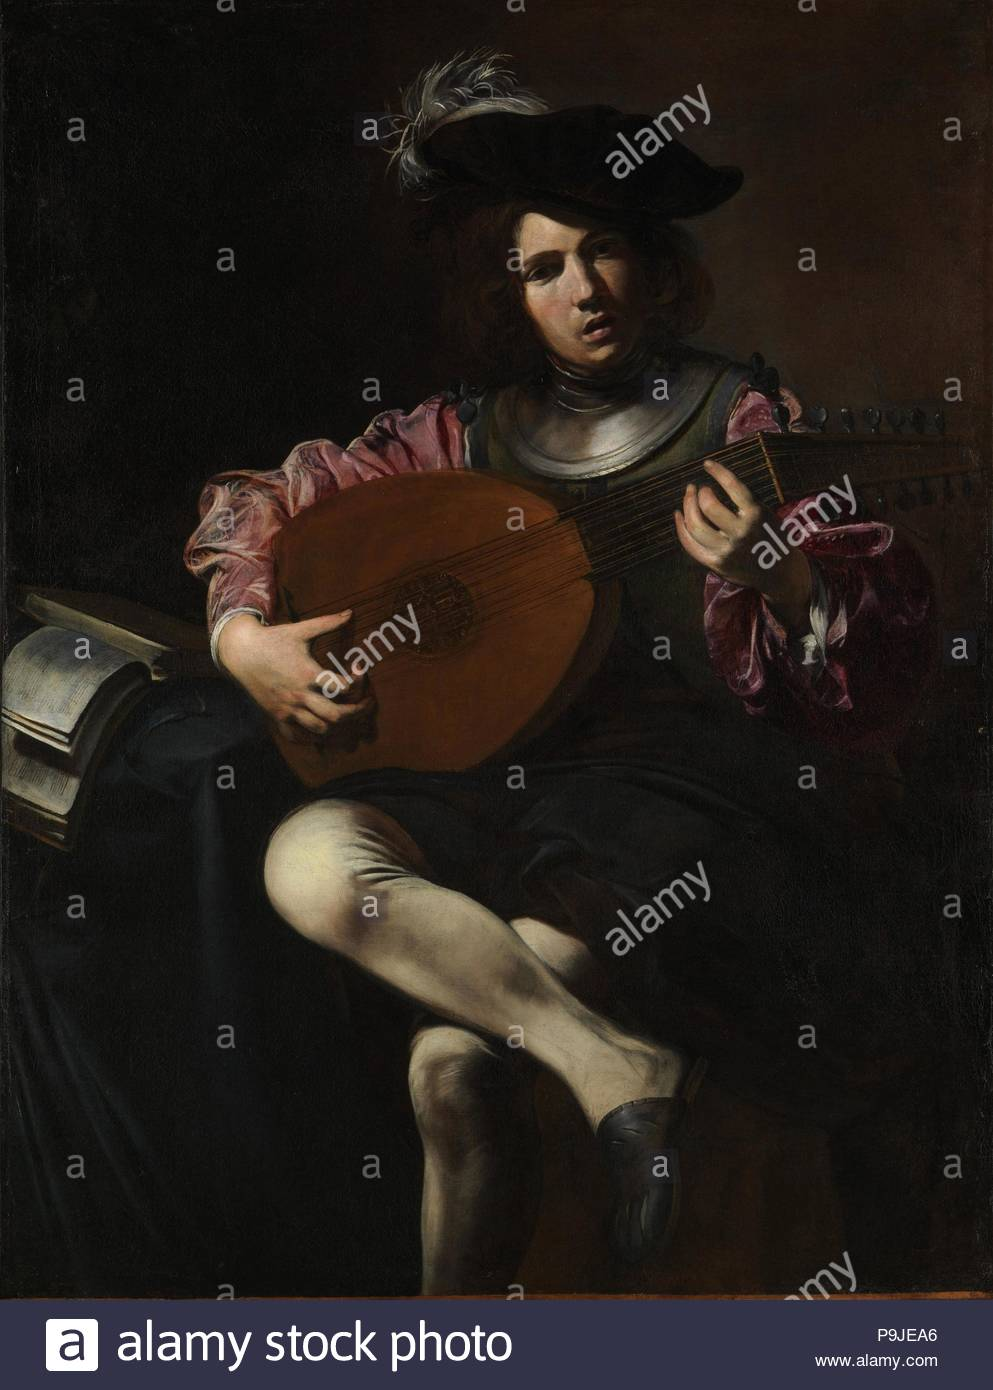 Lute Player, ca. 1625–26, Oil on canvas, 50 1/2 x 39 in. (128.3 x 99.1 cm), Paintings, Valentin de Boulogne (French, Coulommiers-en-Brie 1591–1632 Rome), The greatest French follower of Caravaggio, Valentin was one of the outstanding artists in seventeenth-century Rome. His most frequent subjects are scenes of merriment, with music-making, drinking, and fortune-telling. - Stock Image